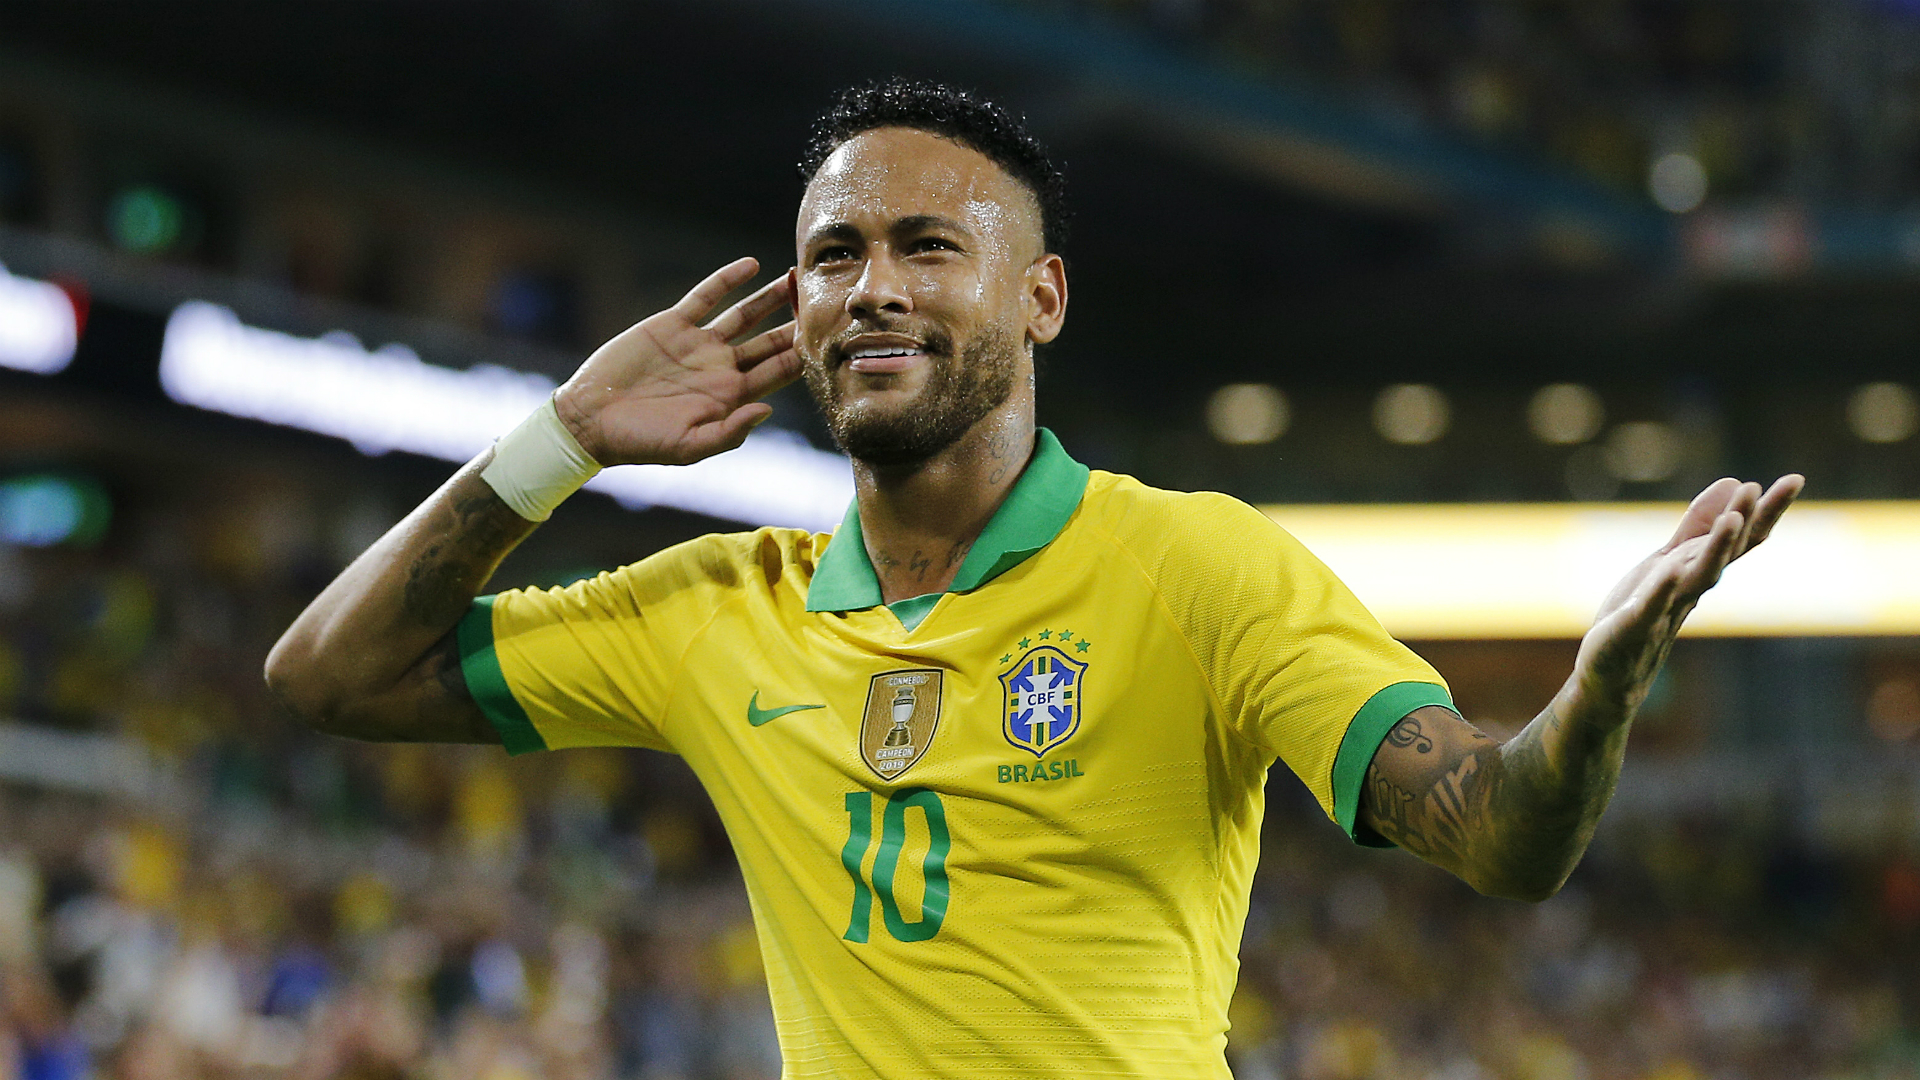 It is time to turn the page - Barcelona boss Valverde tired of Neymar talk